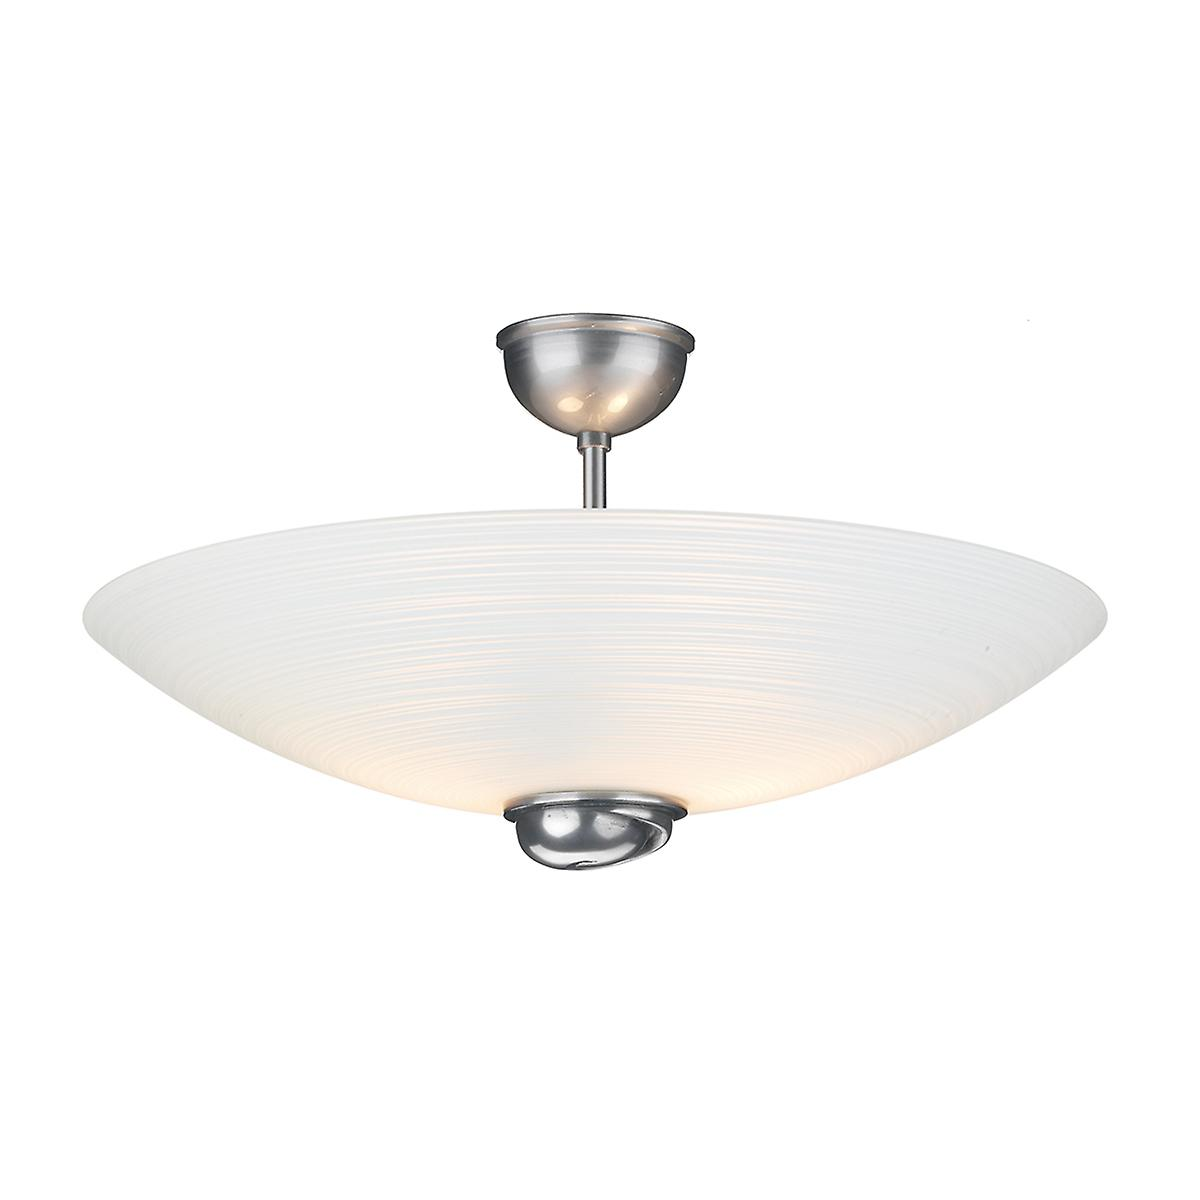 David Hunt SWF5867 Swirl Semi Flush Pendant In Pewter With White Glass